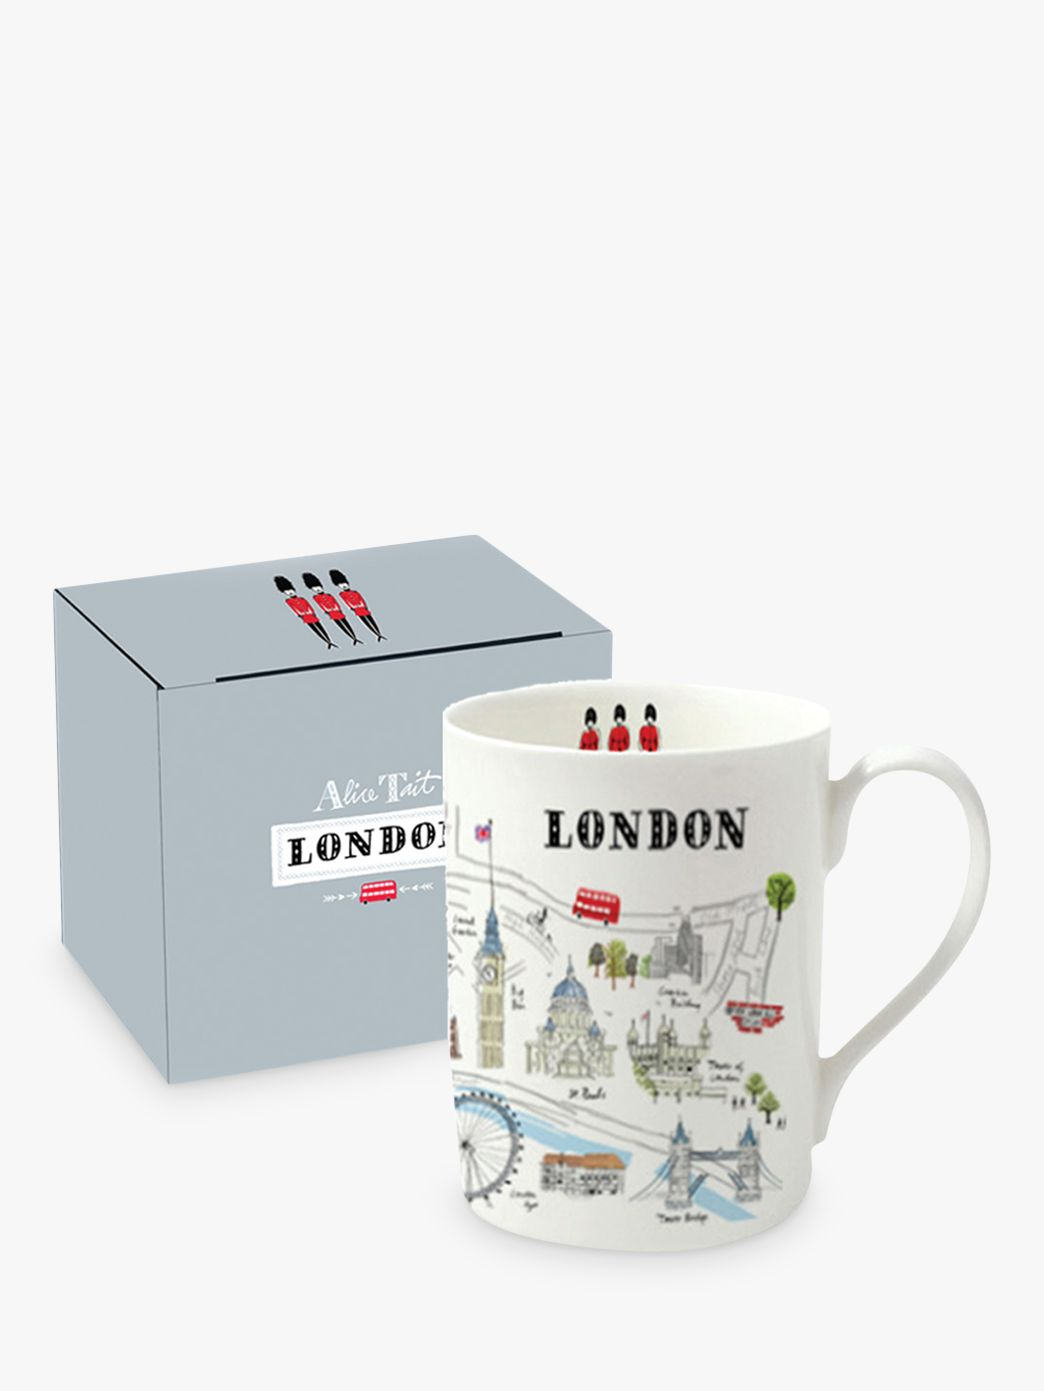 Alice Tait Alice Tait London Mug